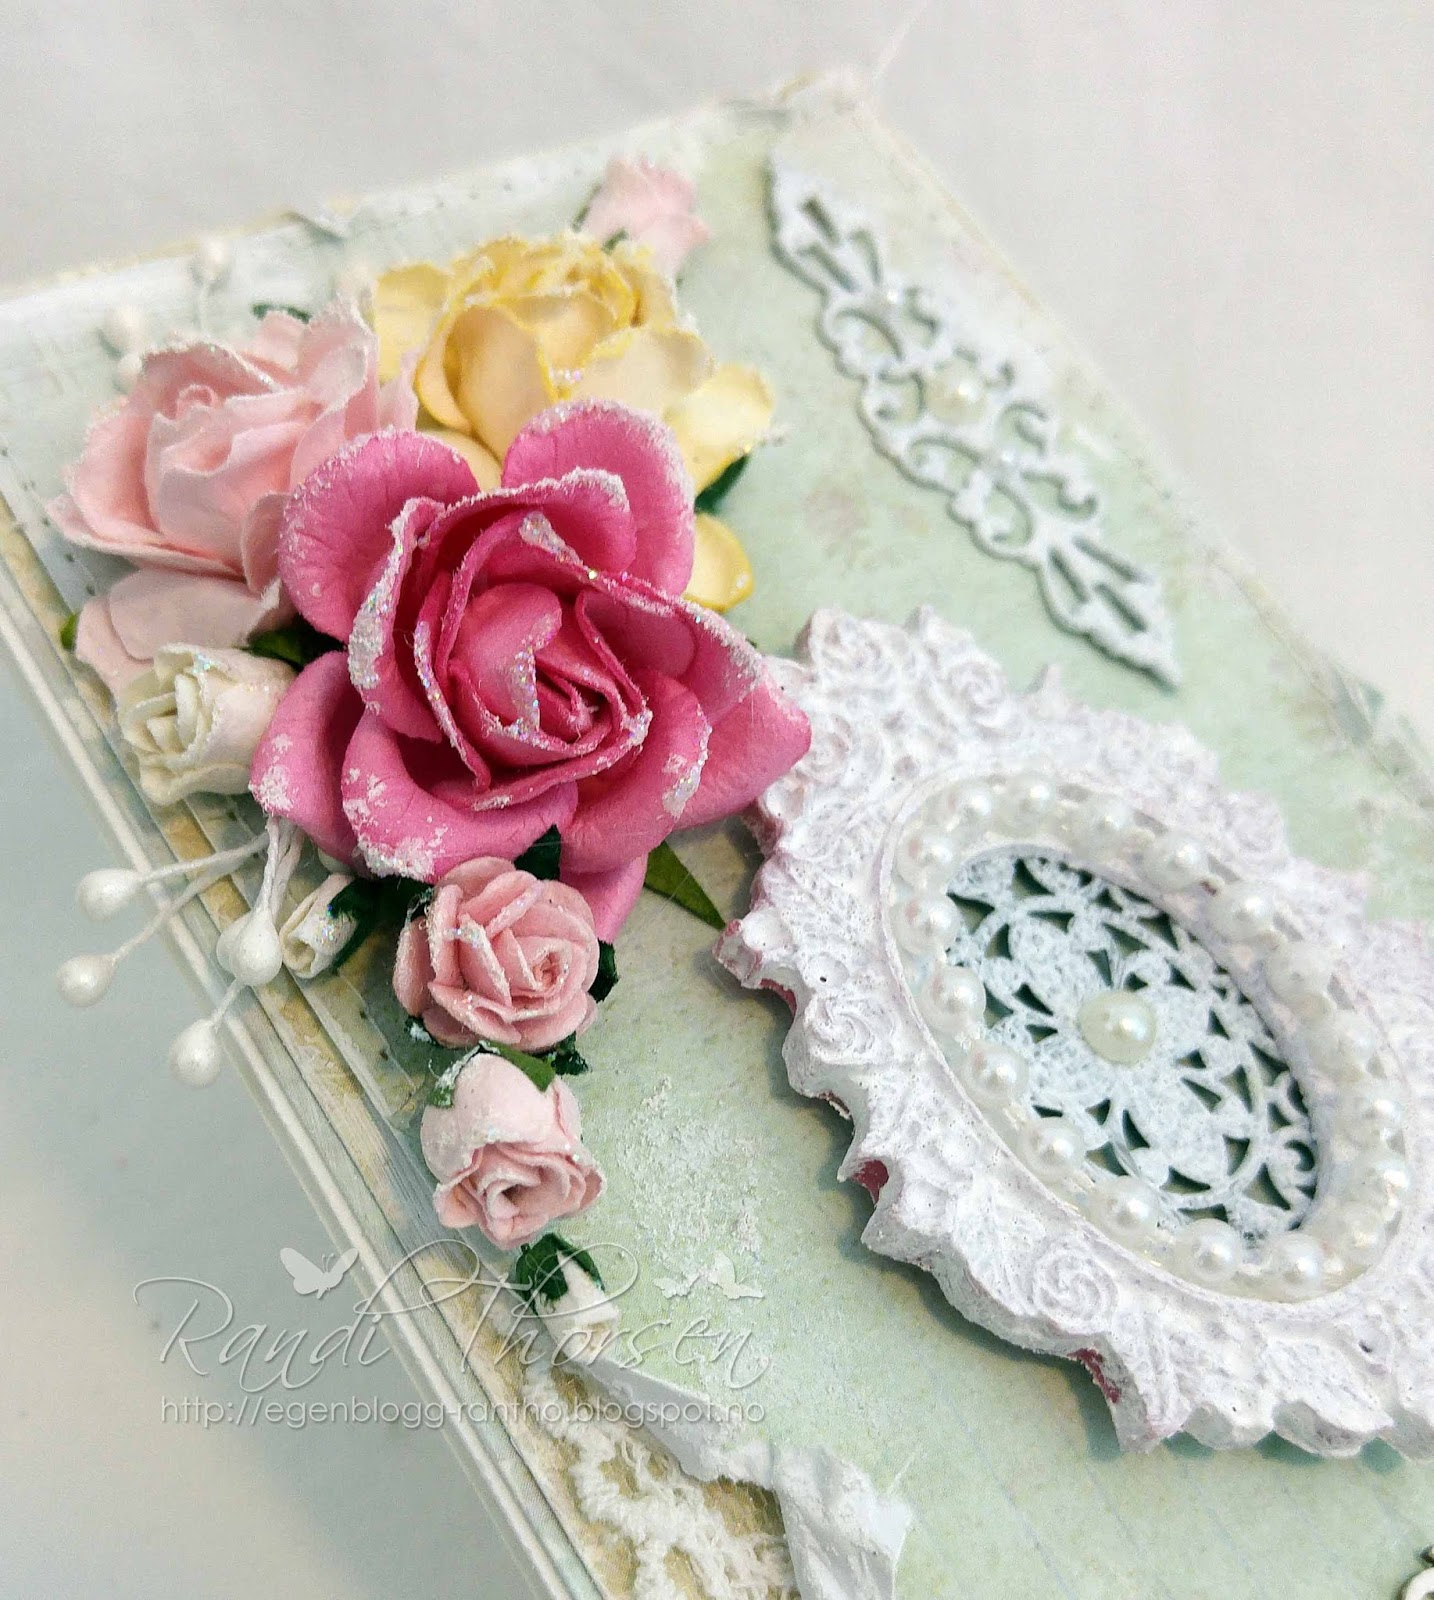 Wild Orchid Crafts: Shabby Chic Card With Metal Embellishment